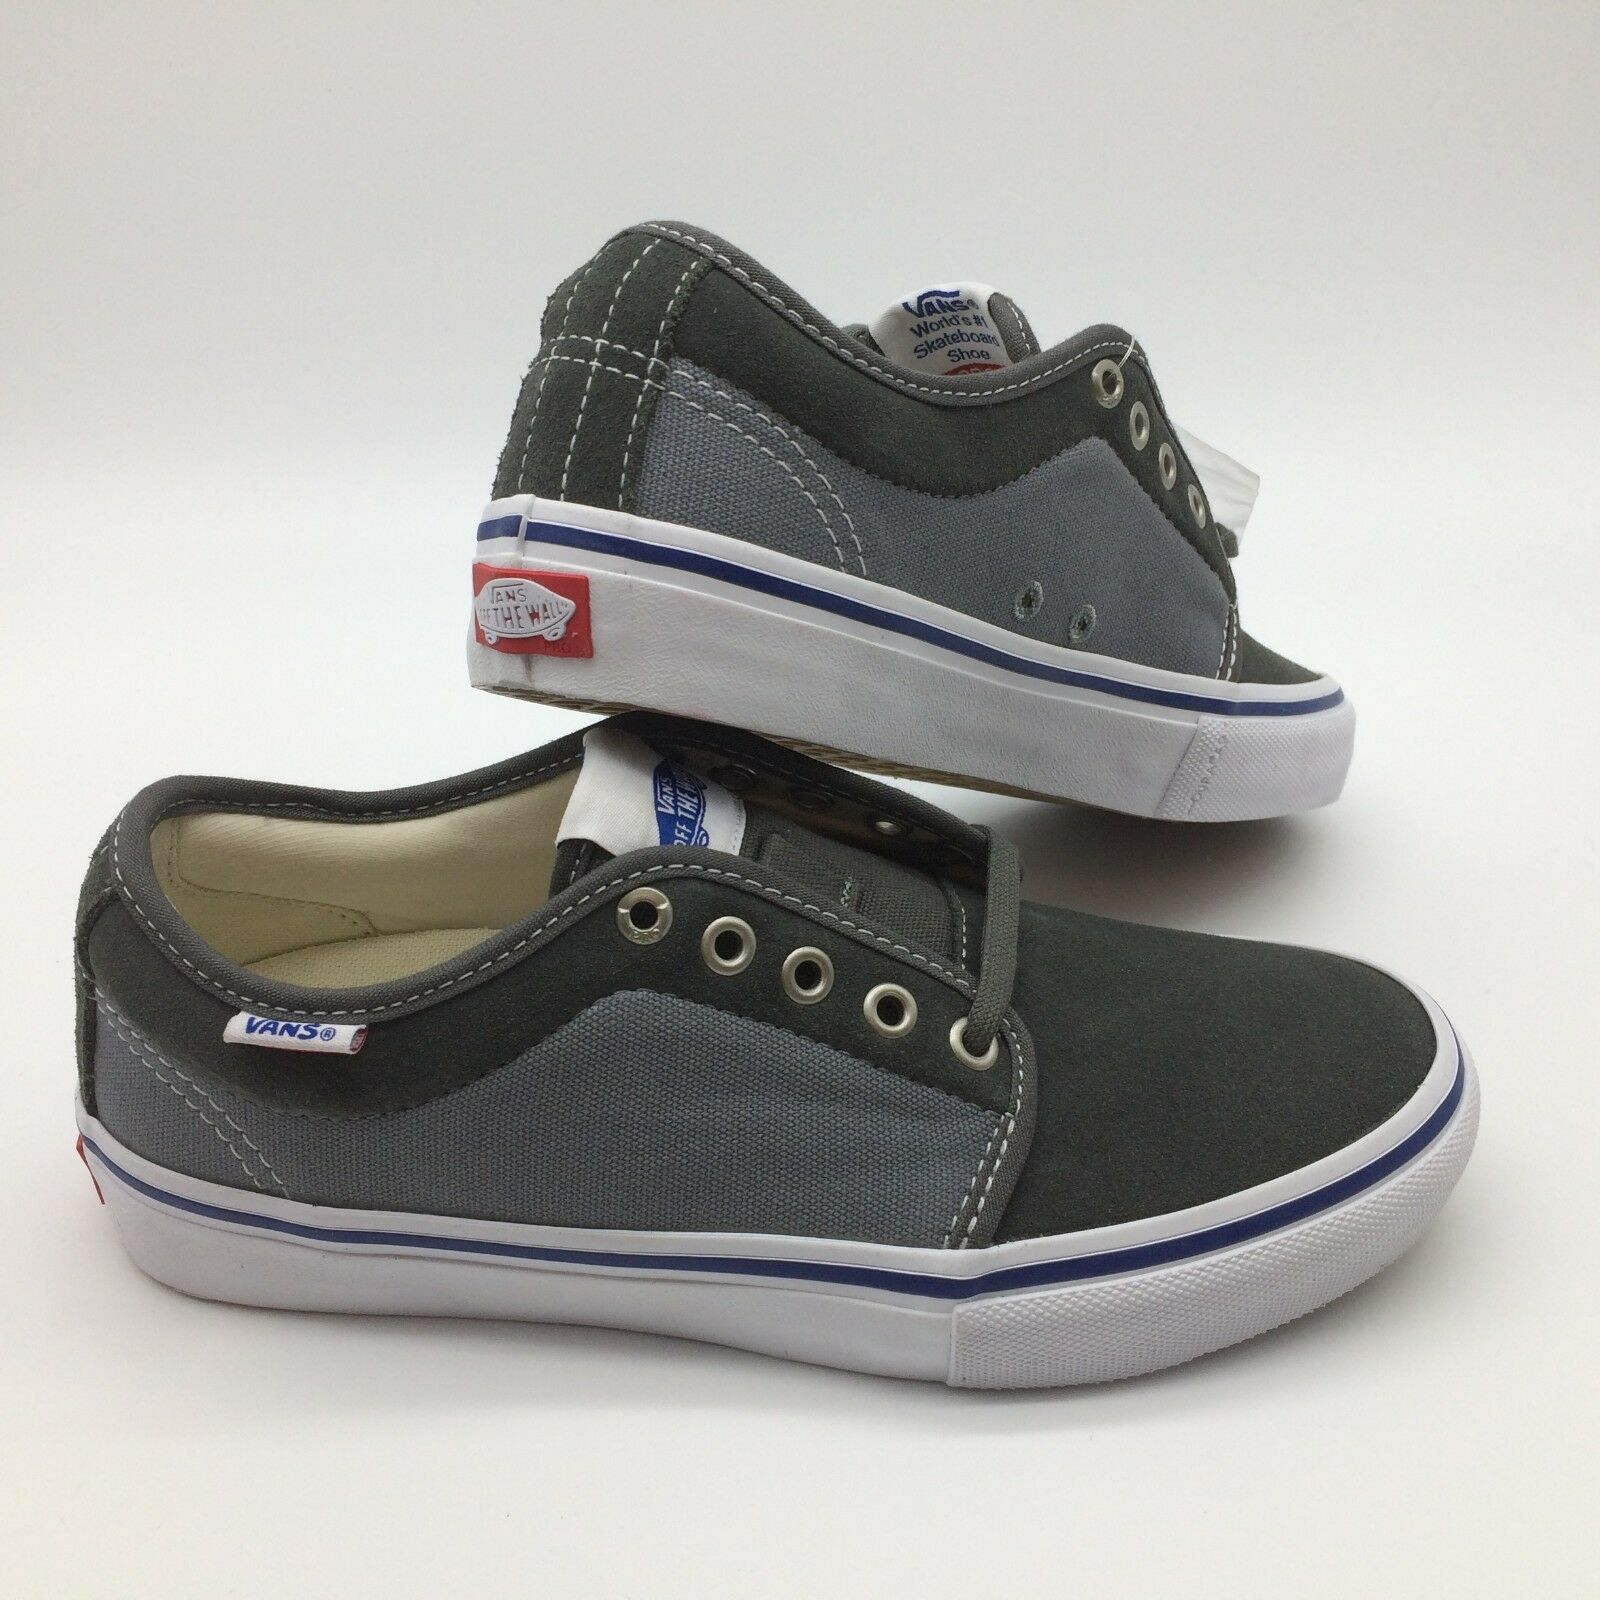 Vans Men's shoes  Chukka Low Pro  -- (Two-Tone) Gunmental Monmnt